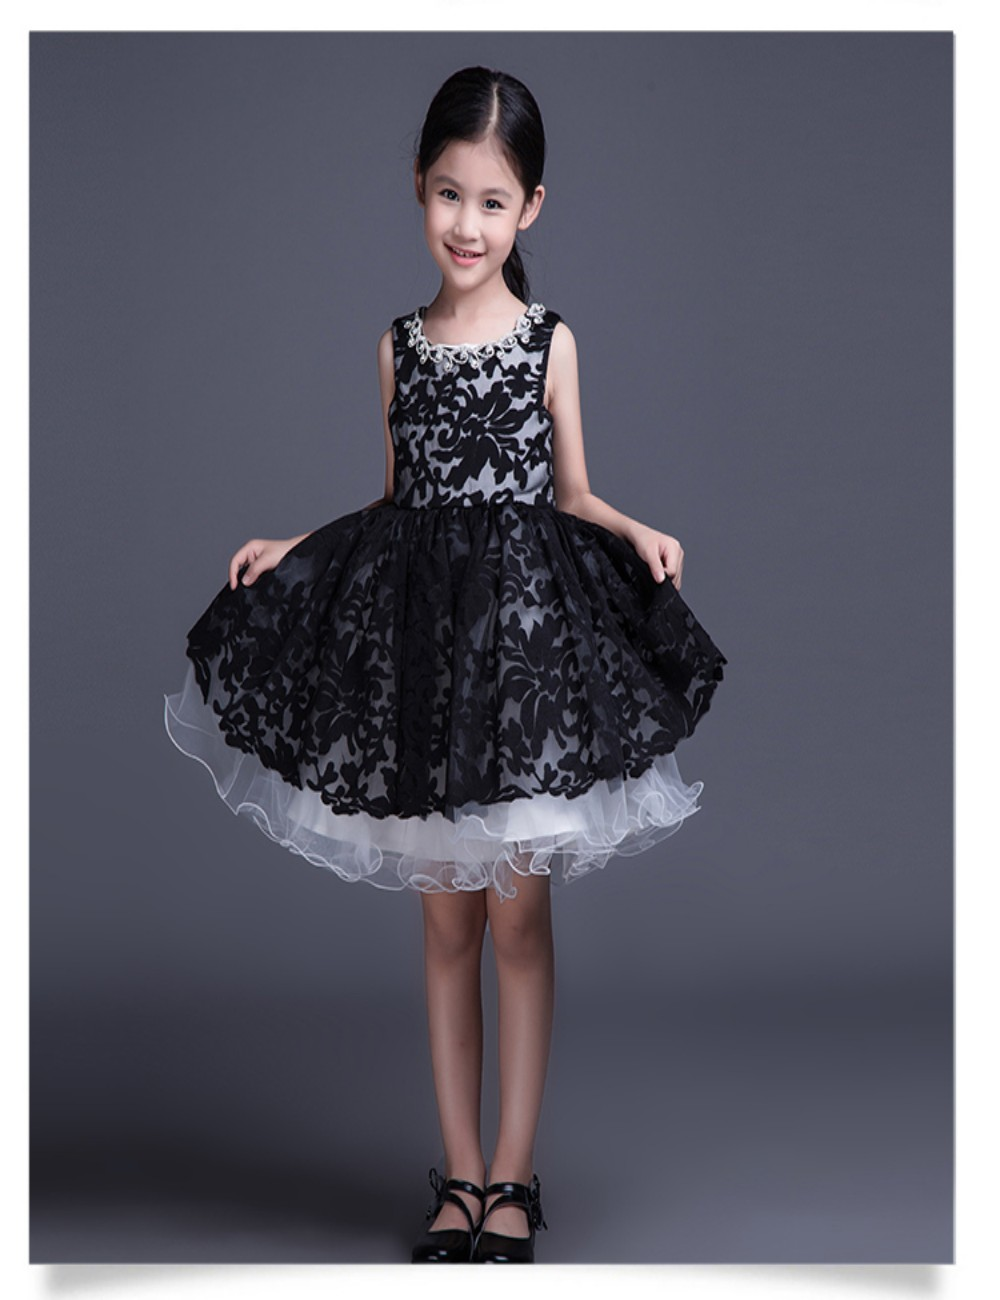 Best prices on Black and white checkered dresses in Baby & Kids' Clothes online. Visit Bizrate to find the best deals on top brands. Read reviews on Babies & Kids merchants and buy with confidence.